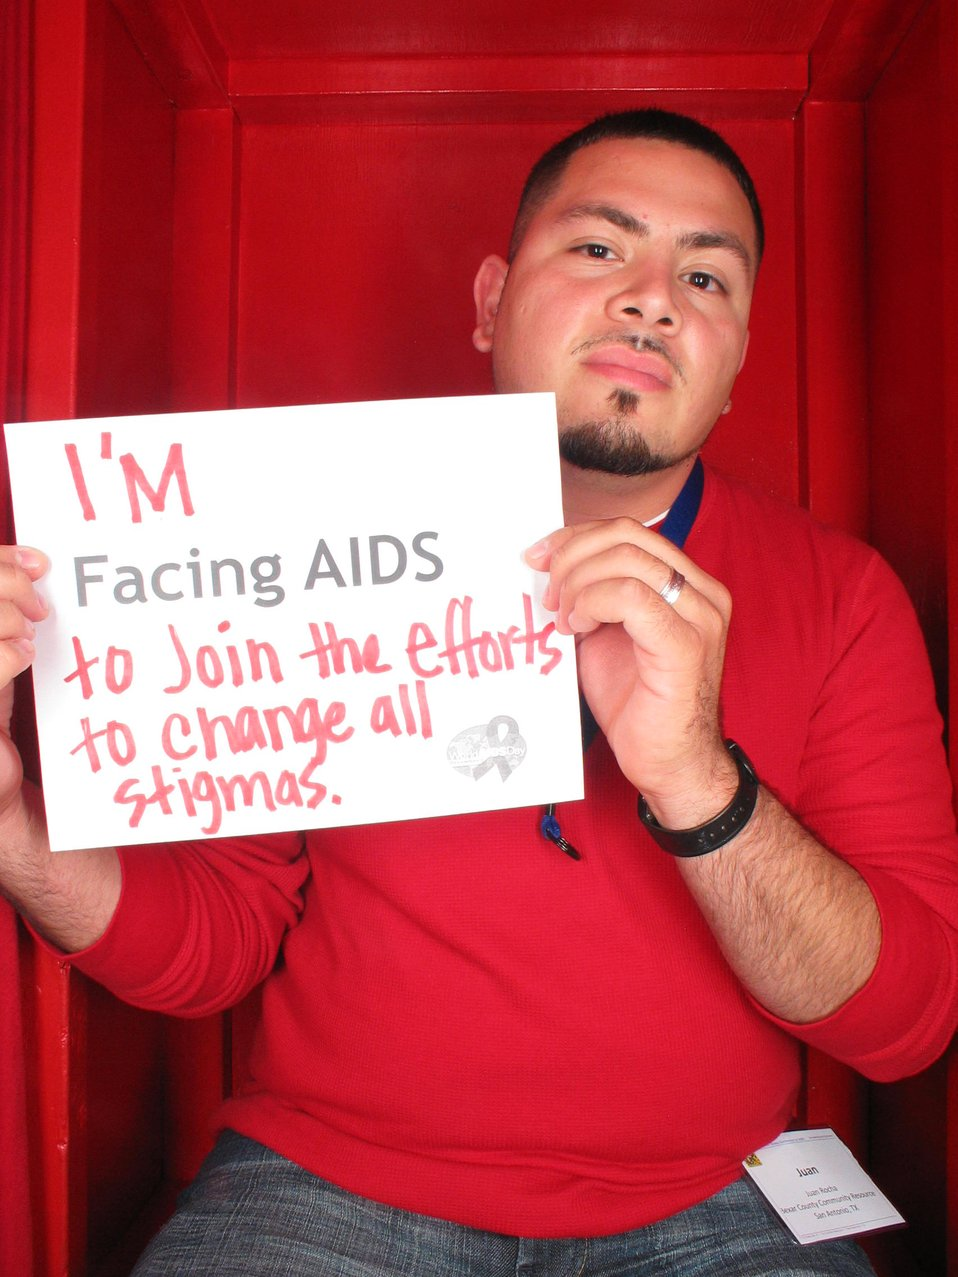 I'm Facing AIDS to join the efforts to change all stigmas.